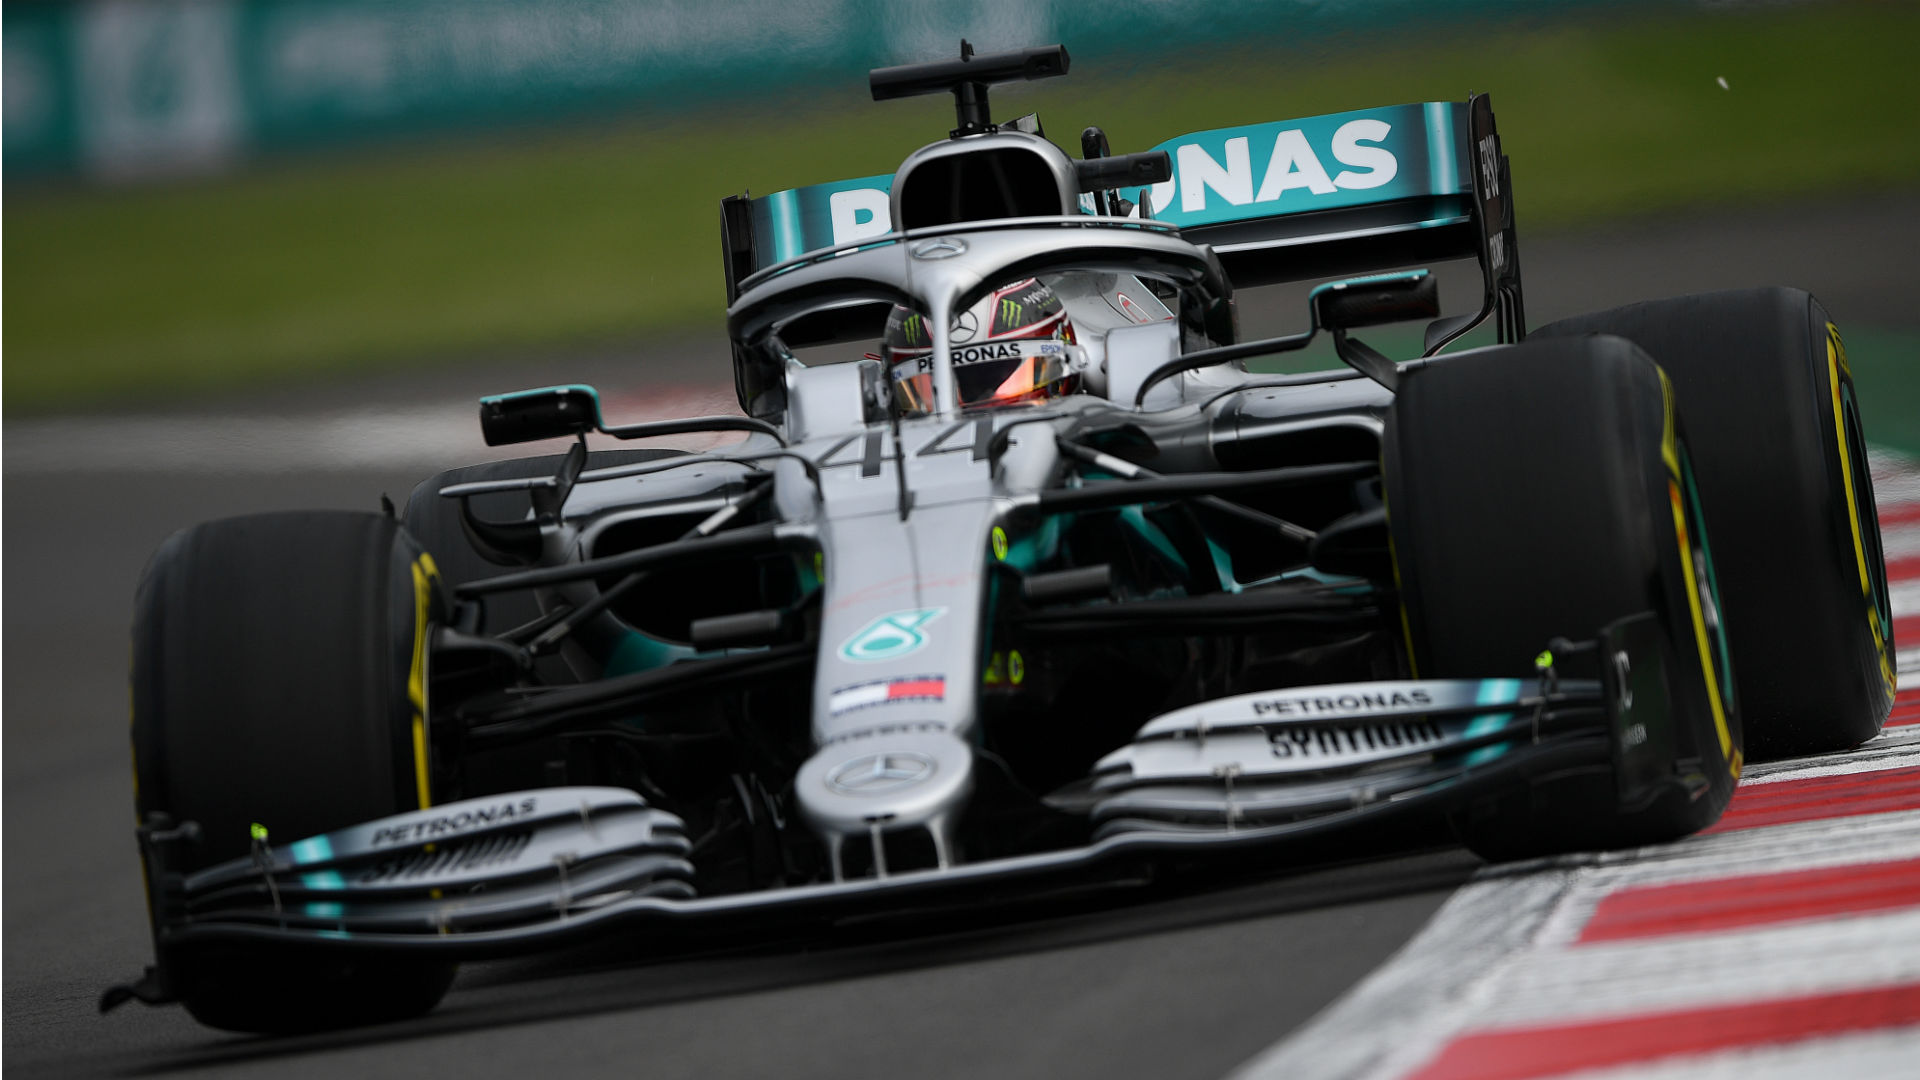 Title-chasing Hamilton fifth fastest as Vettel sets Mexico practice pace